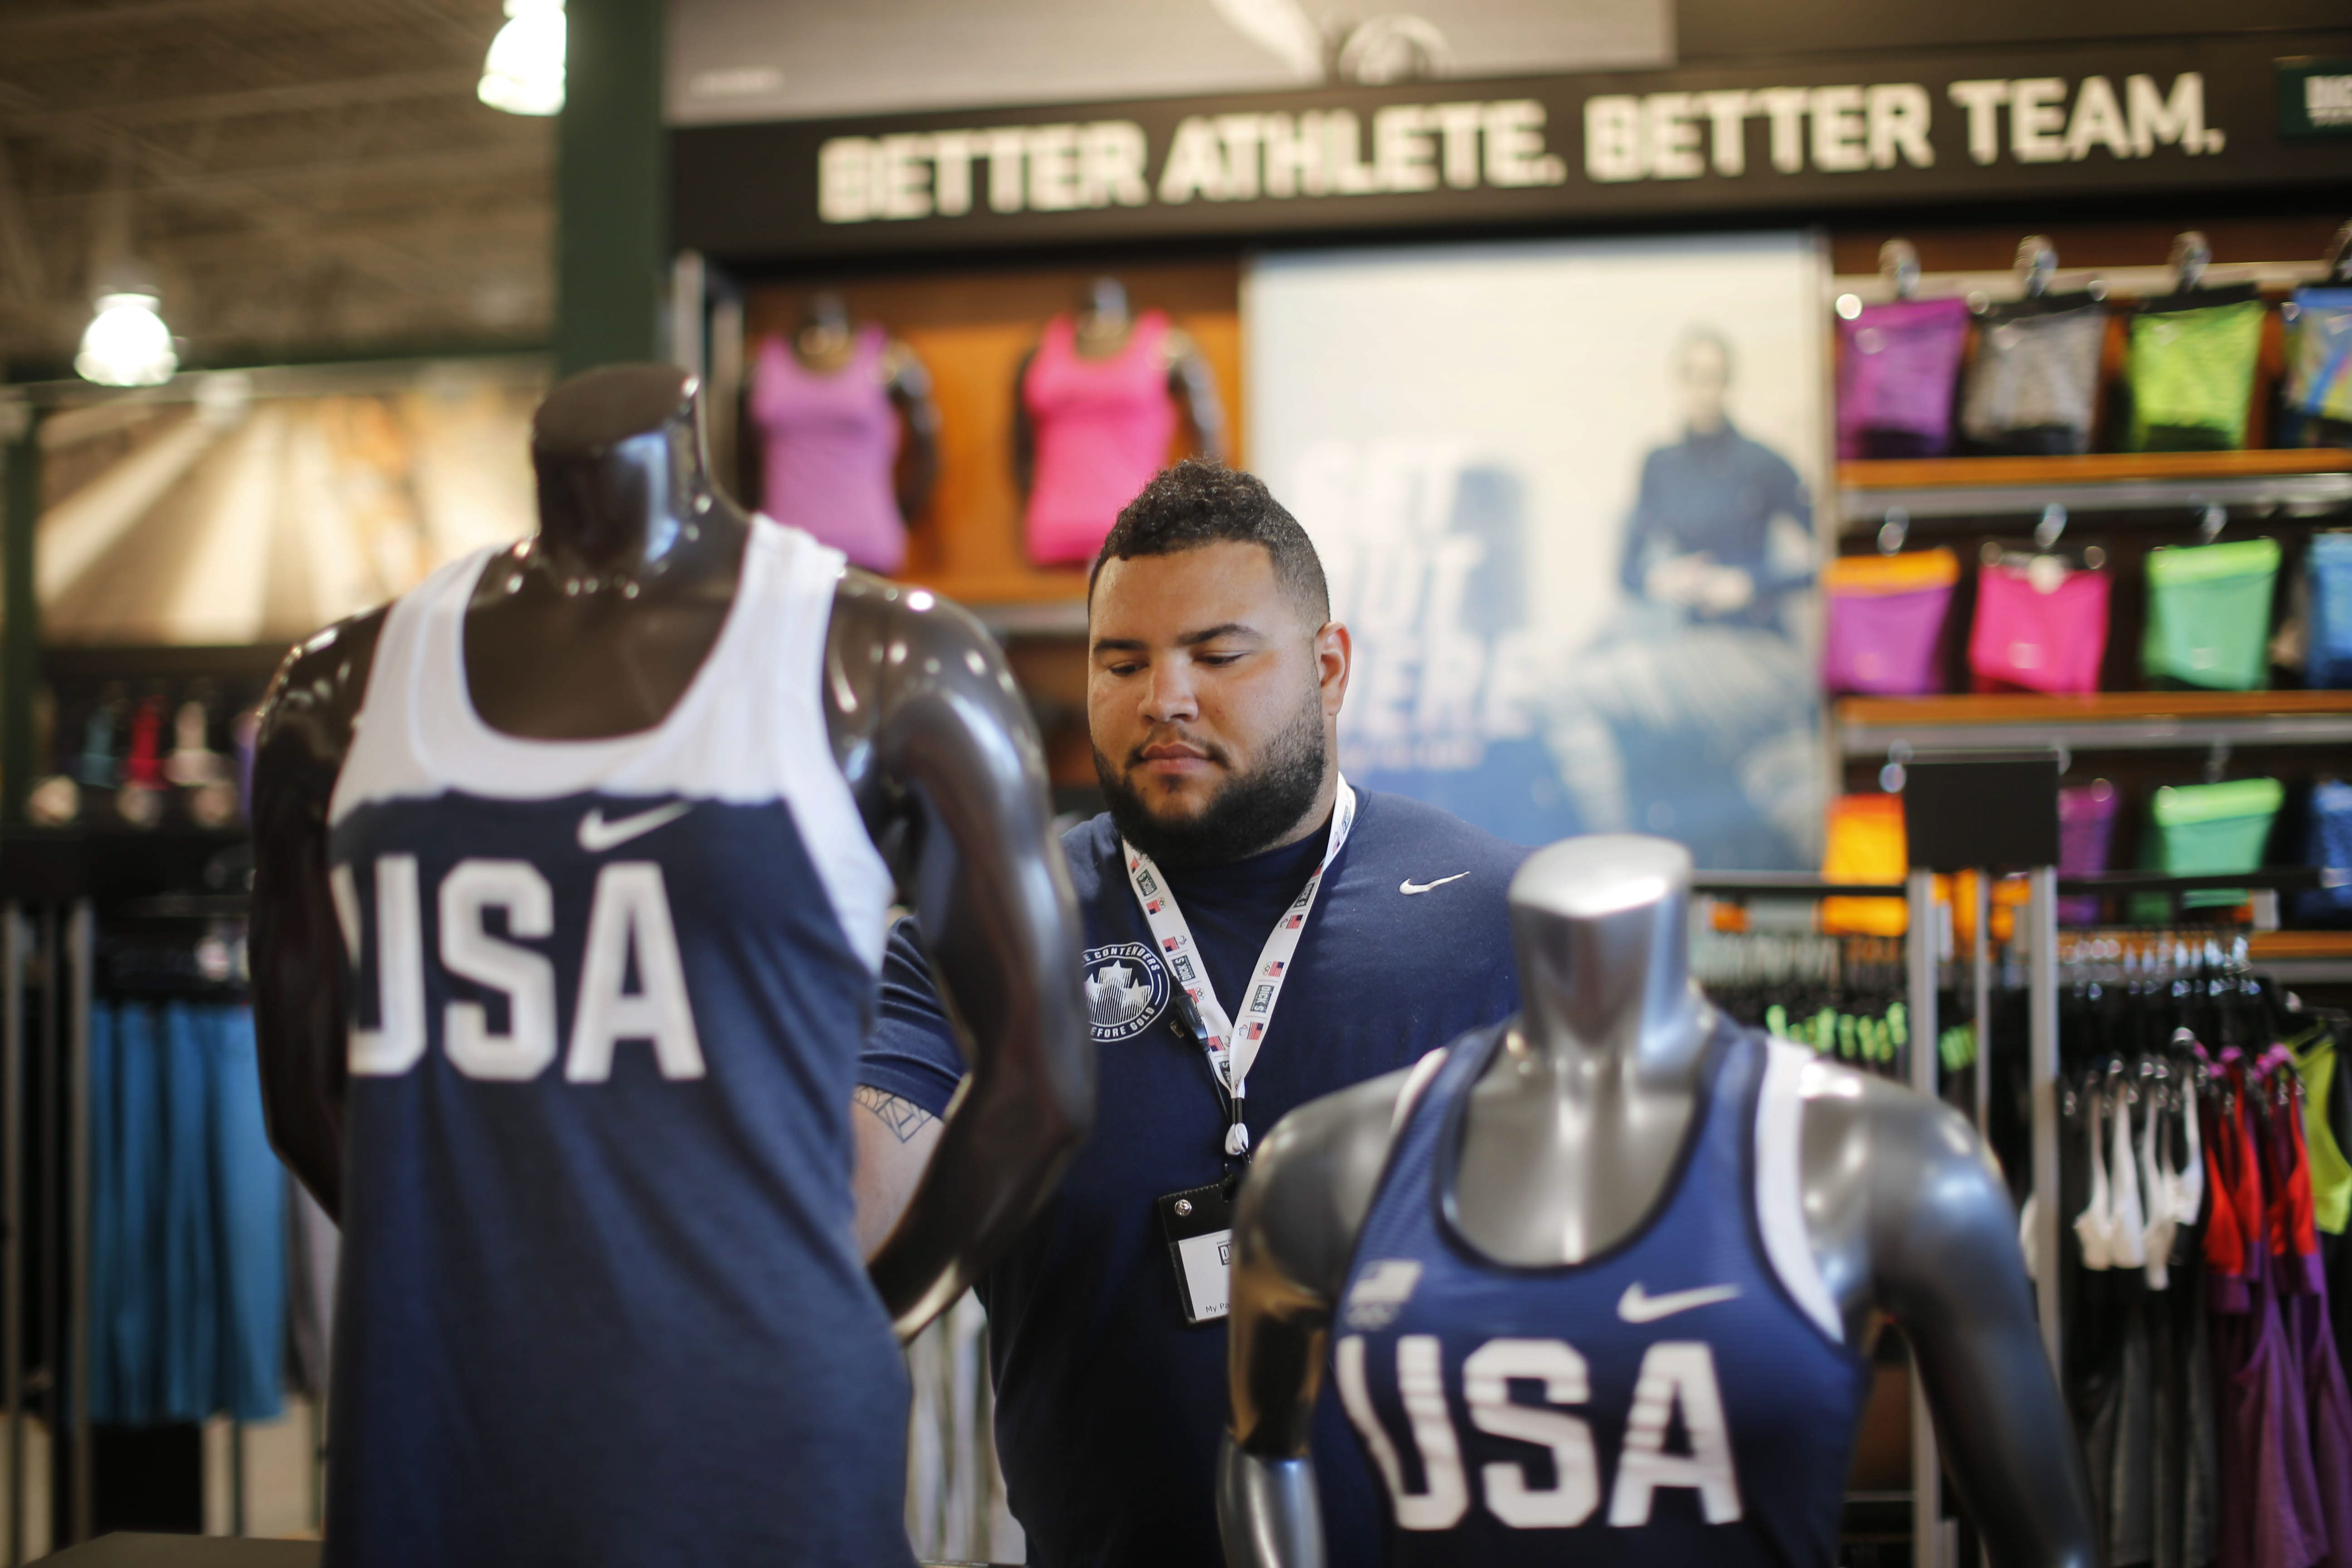 Shot-putter Jon Jones, formerly a UB standout, works at Dicks Sporting Goods at the Boulevard Mall while training to make the U.S. Olympic team as part of a program Ricks has for aspiring athletes, Tuesday, June 7, 2016. (Derek Gee/Buffalo News)